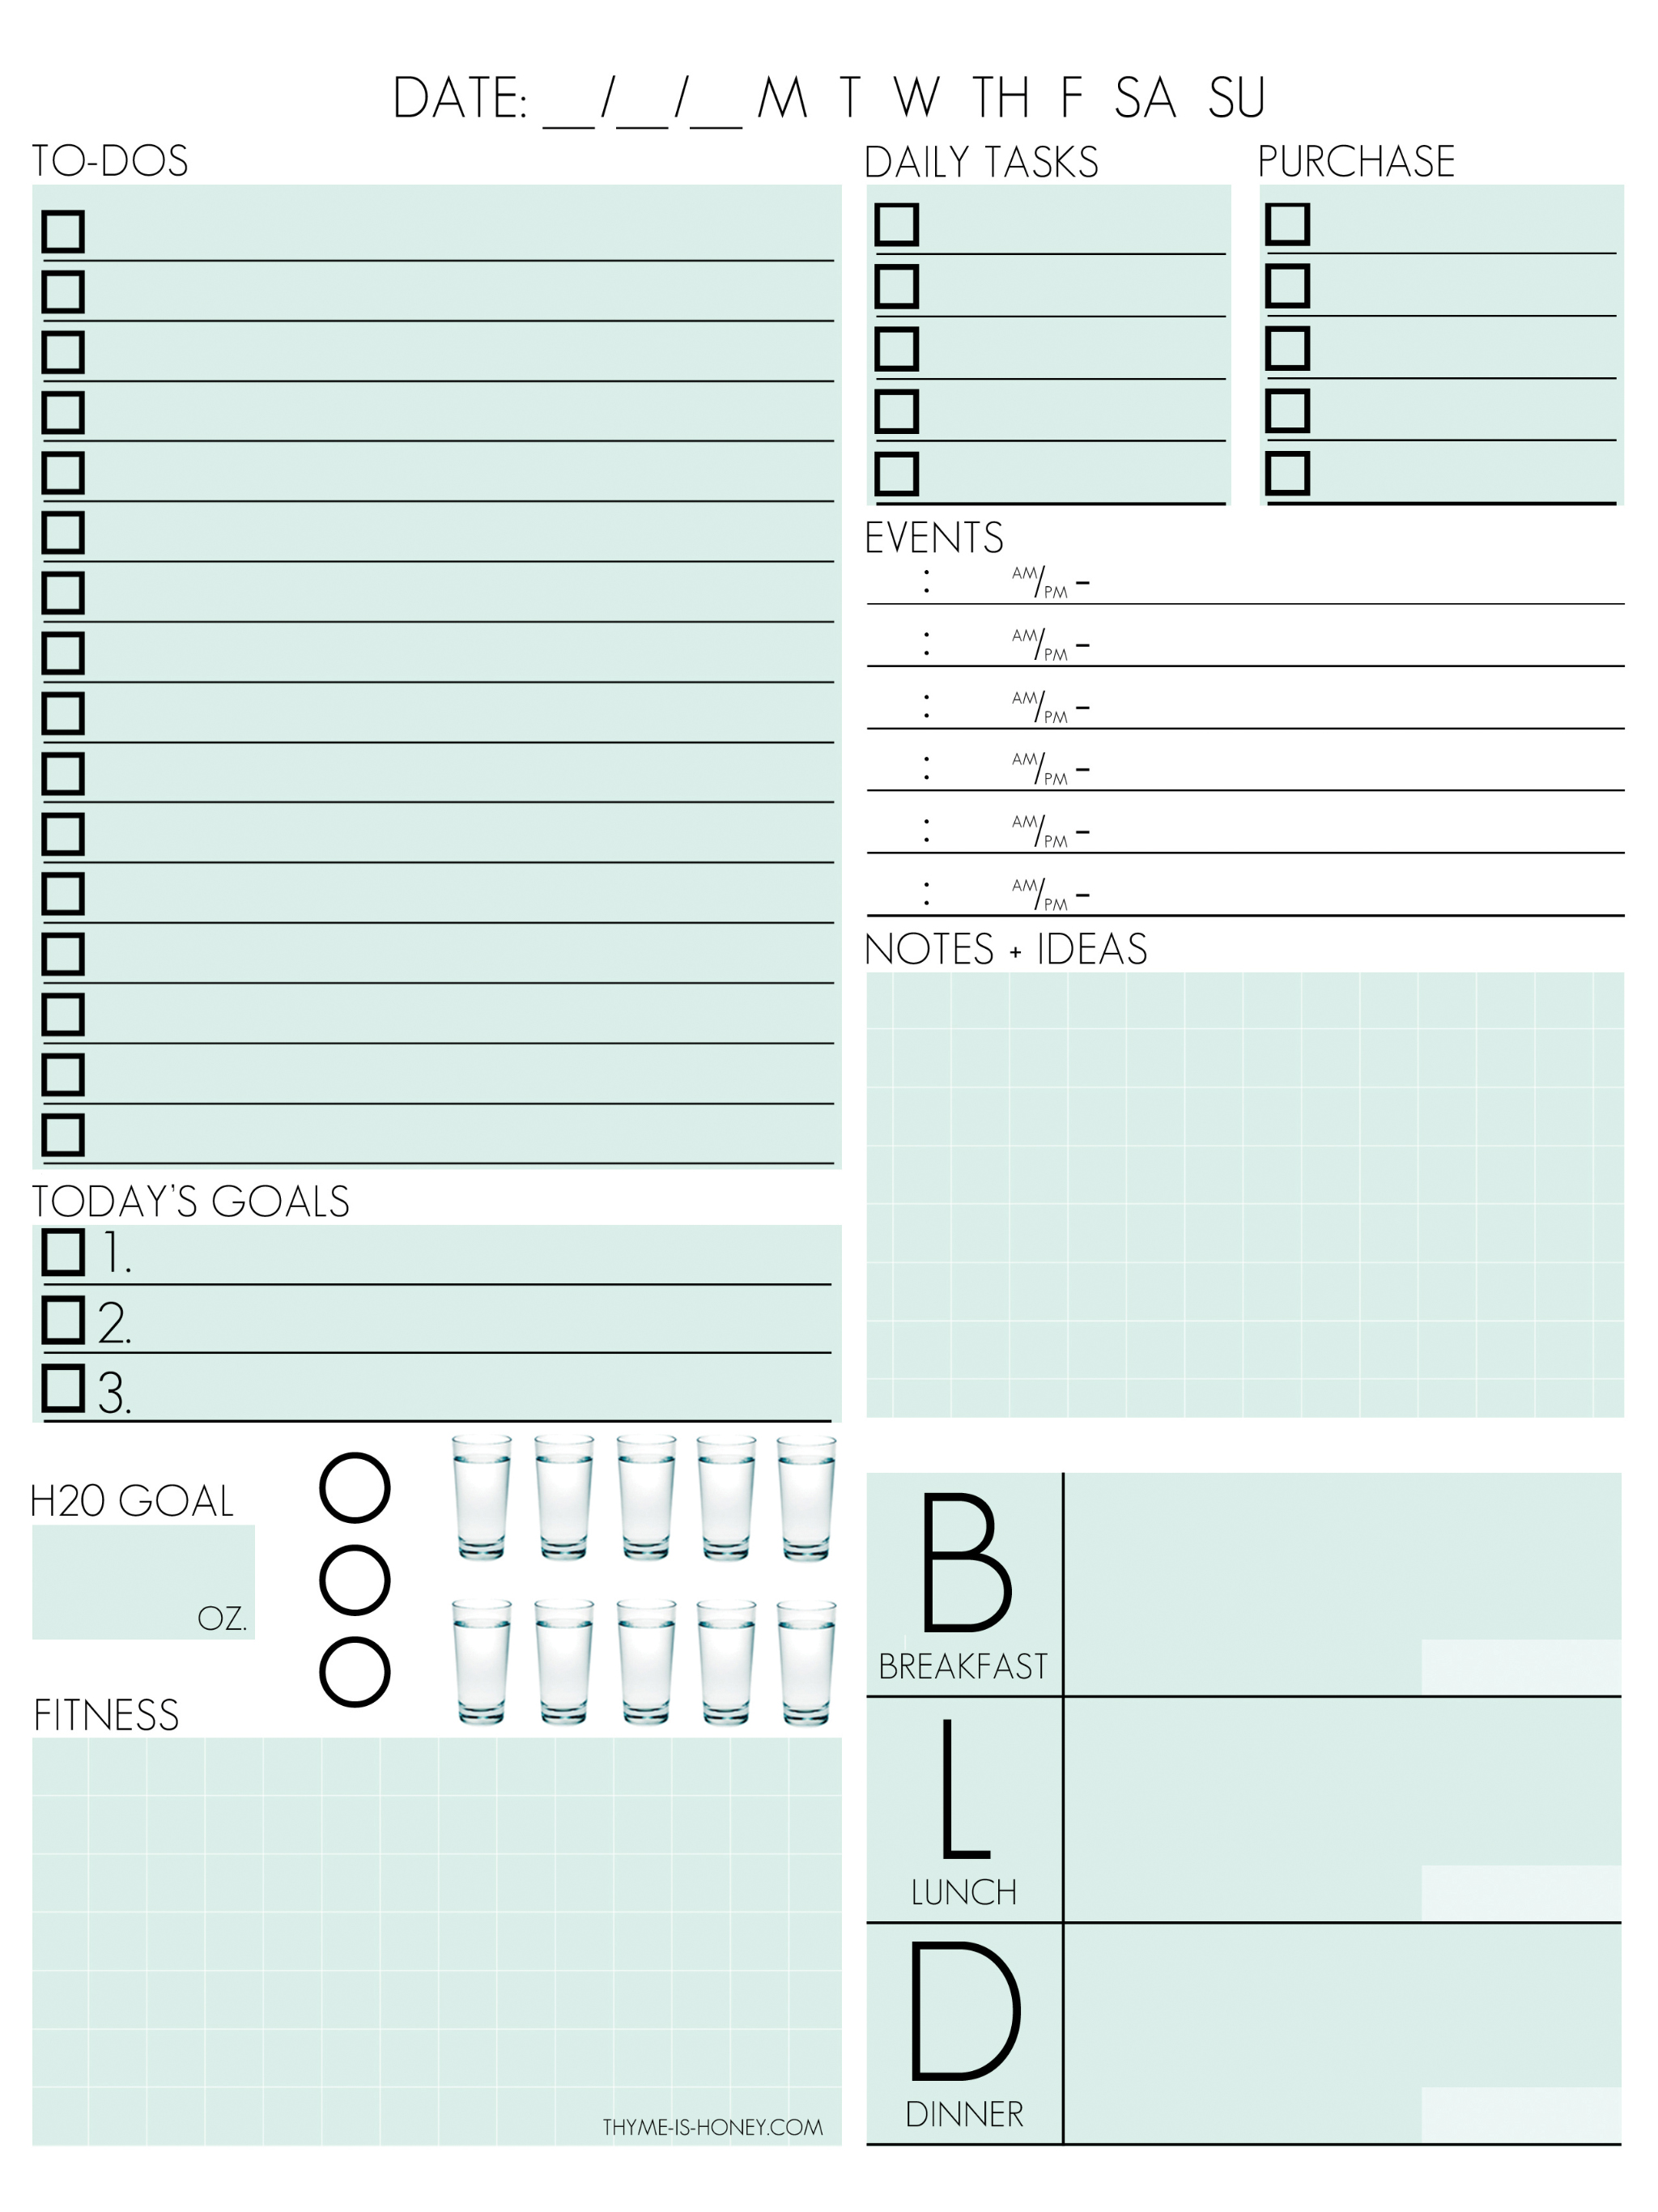 Download Template As Image ... Regarding Daily Diary Template